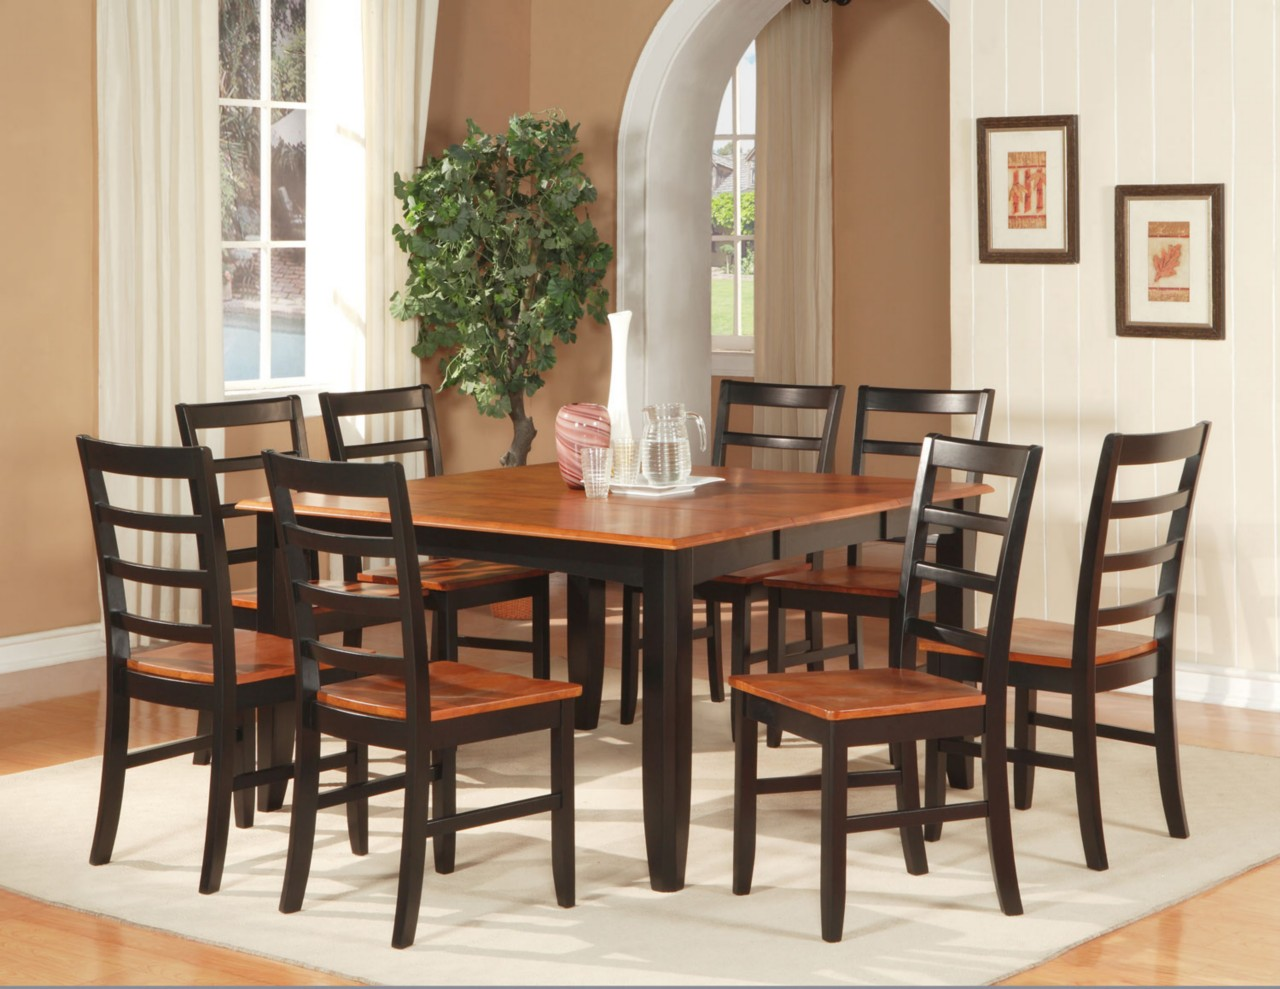 dining room table for 8 kitchen table chairs set Details About 9 PC SQUARE COUNTER HEIGHT DINING ROOM TABLE 8 CHAIRS